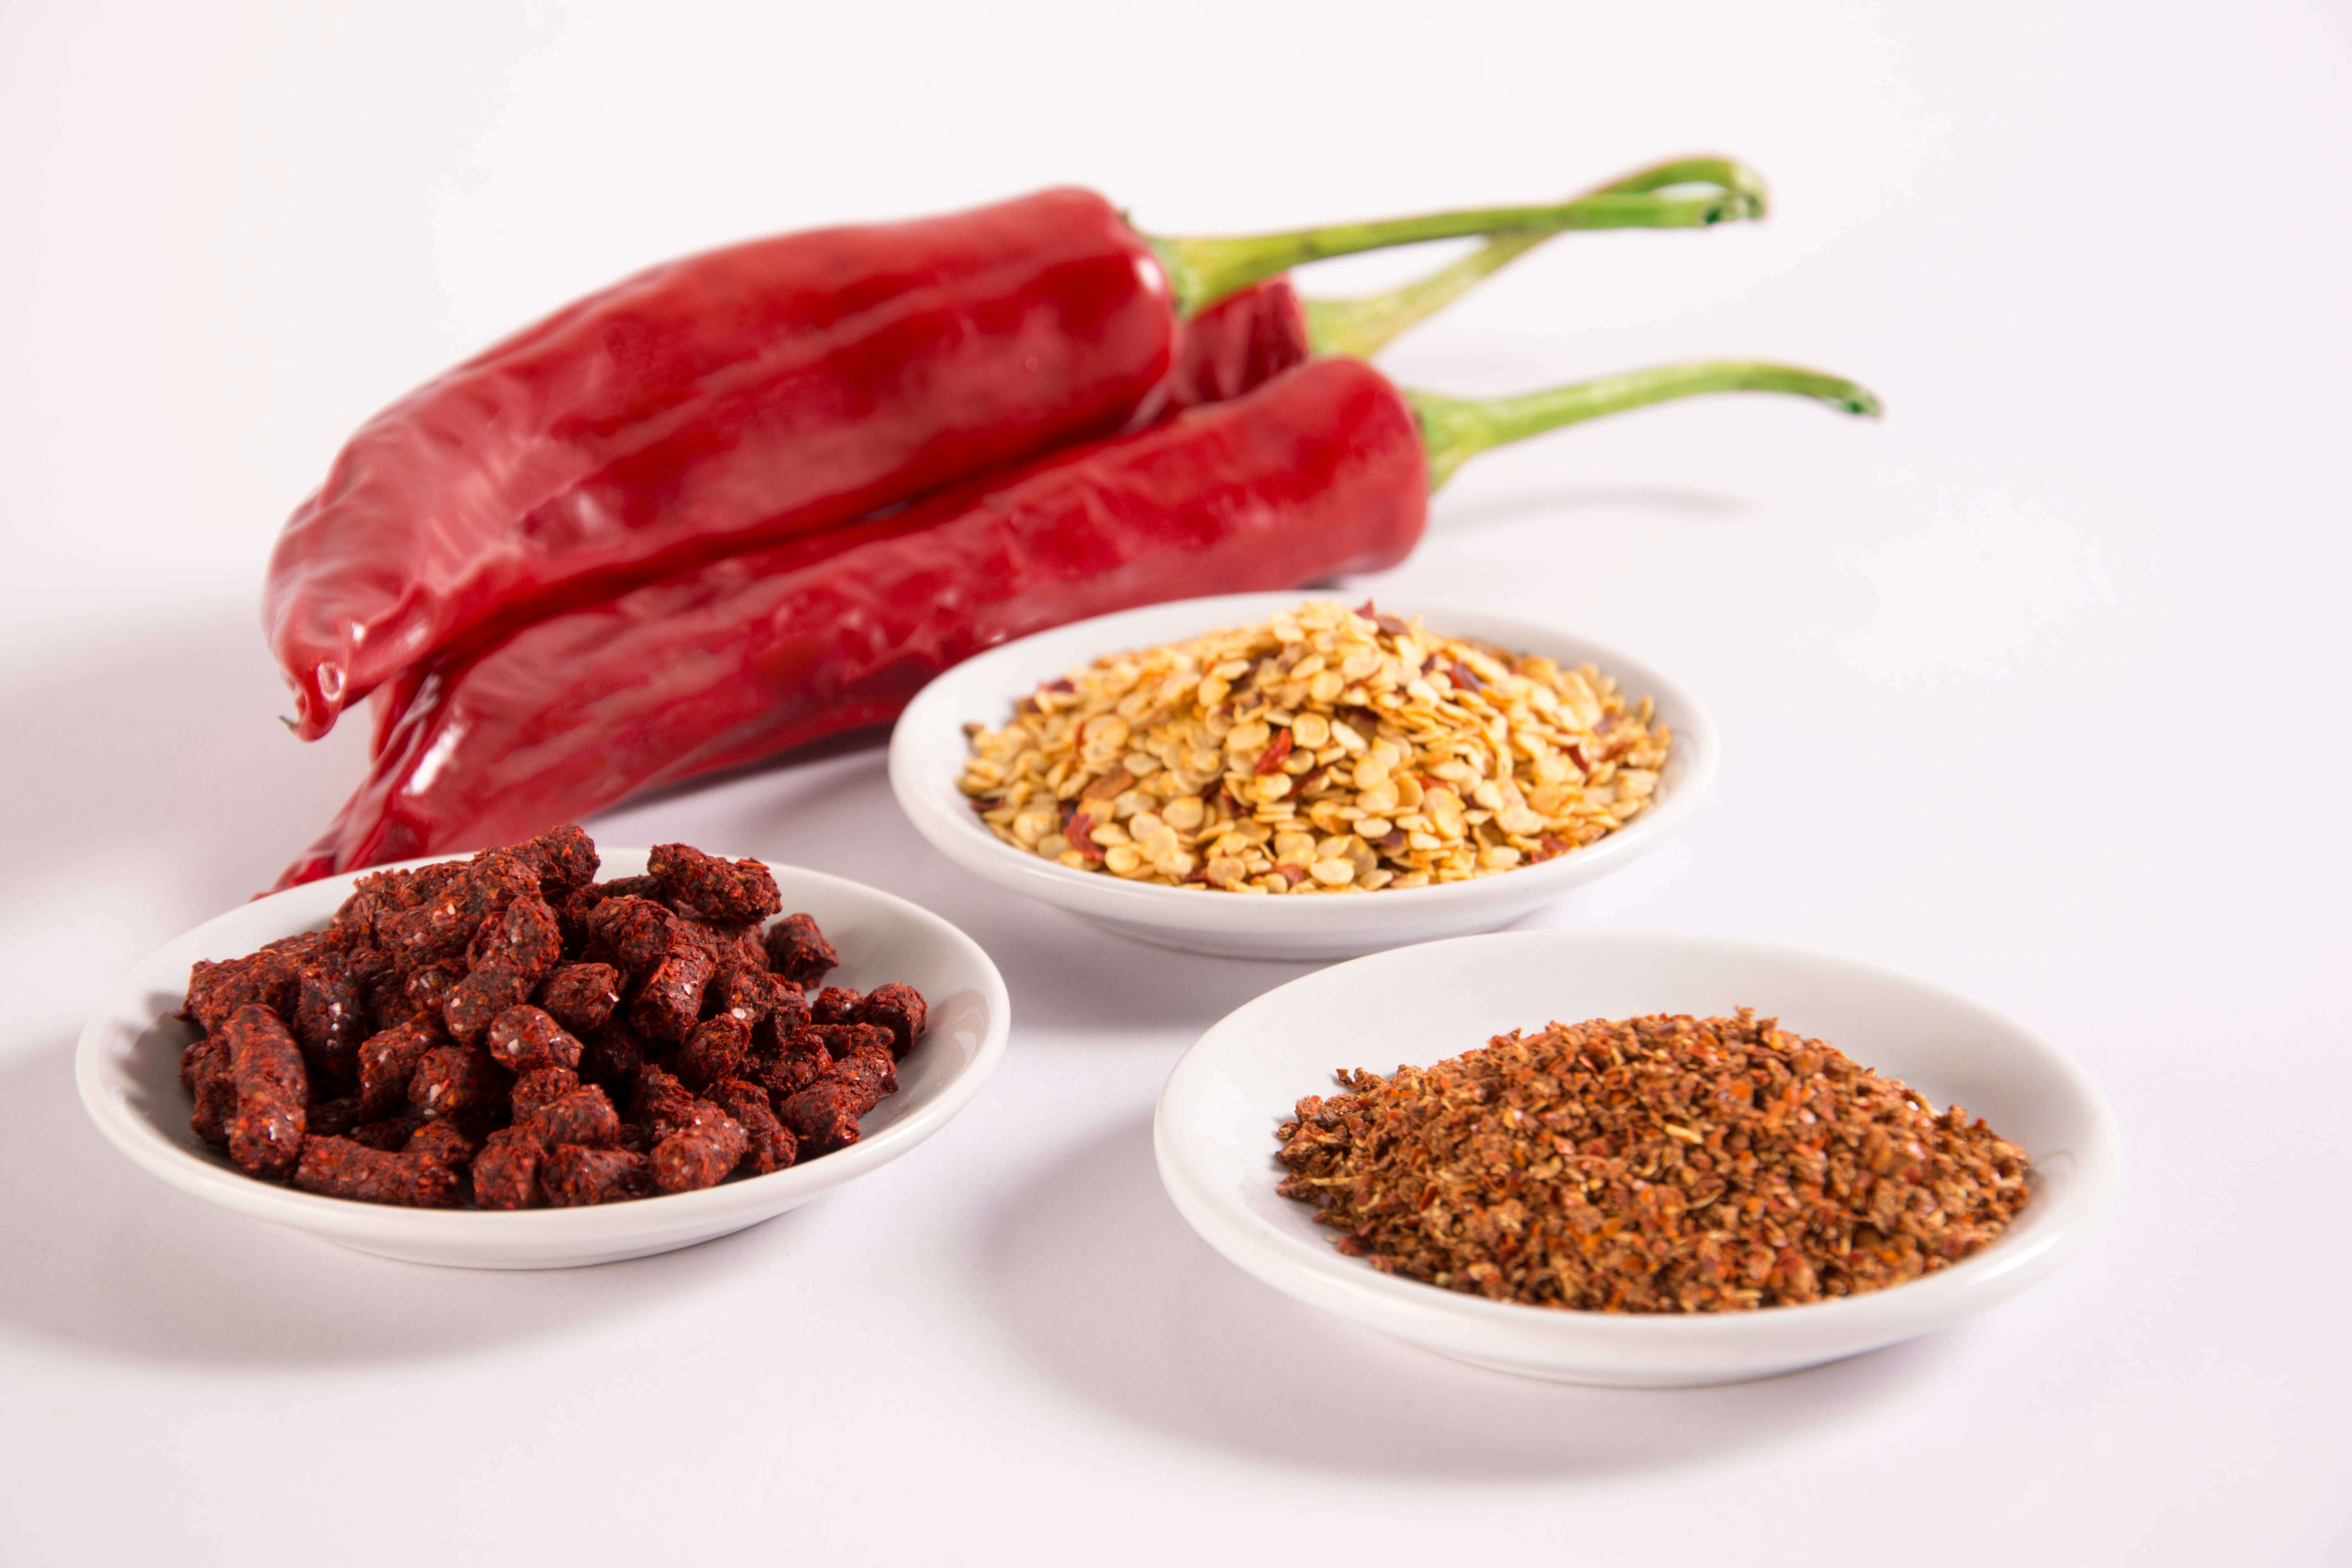 paprika oleoresin in food products imbarex cochineal carmine